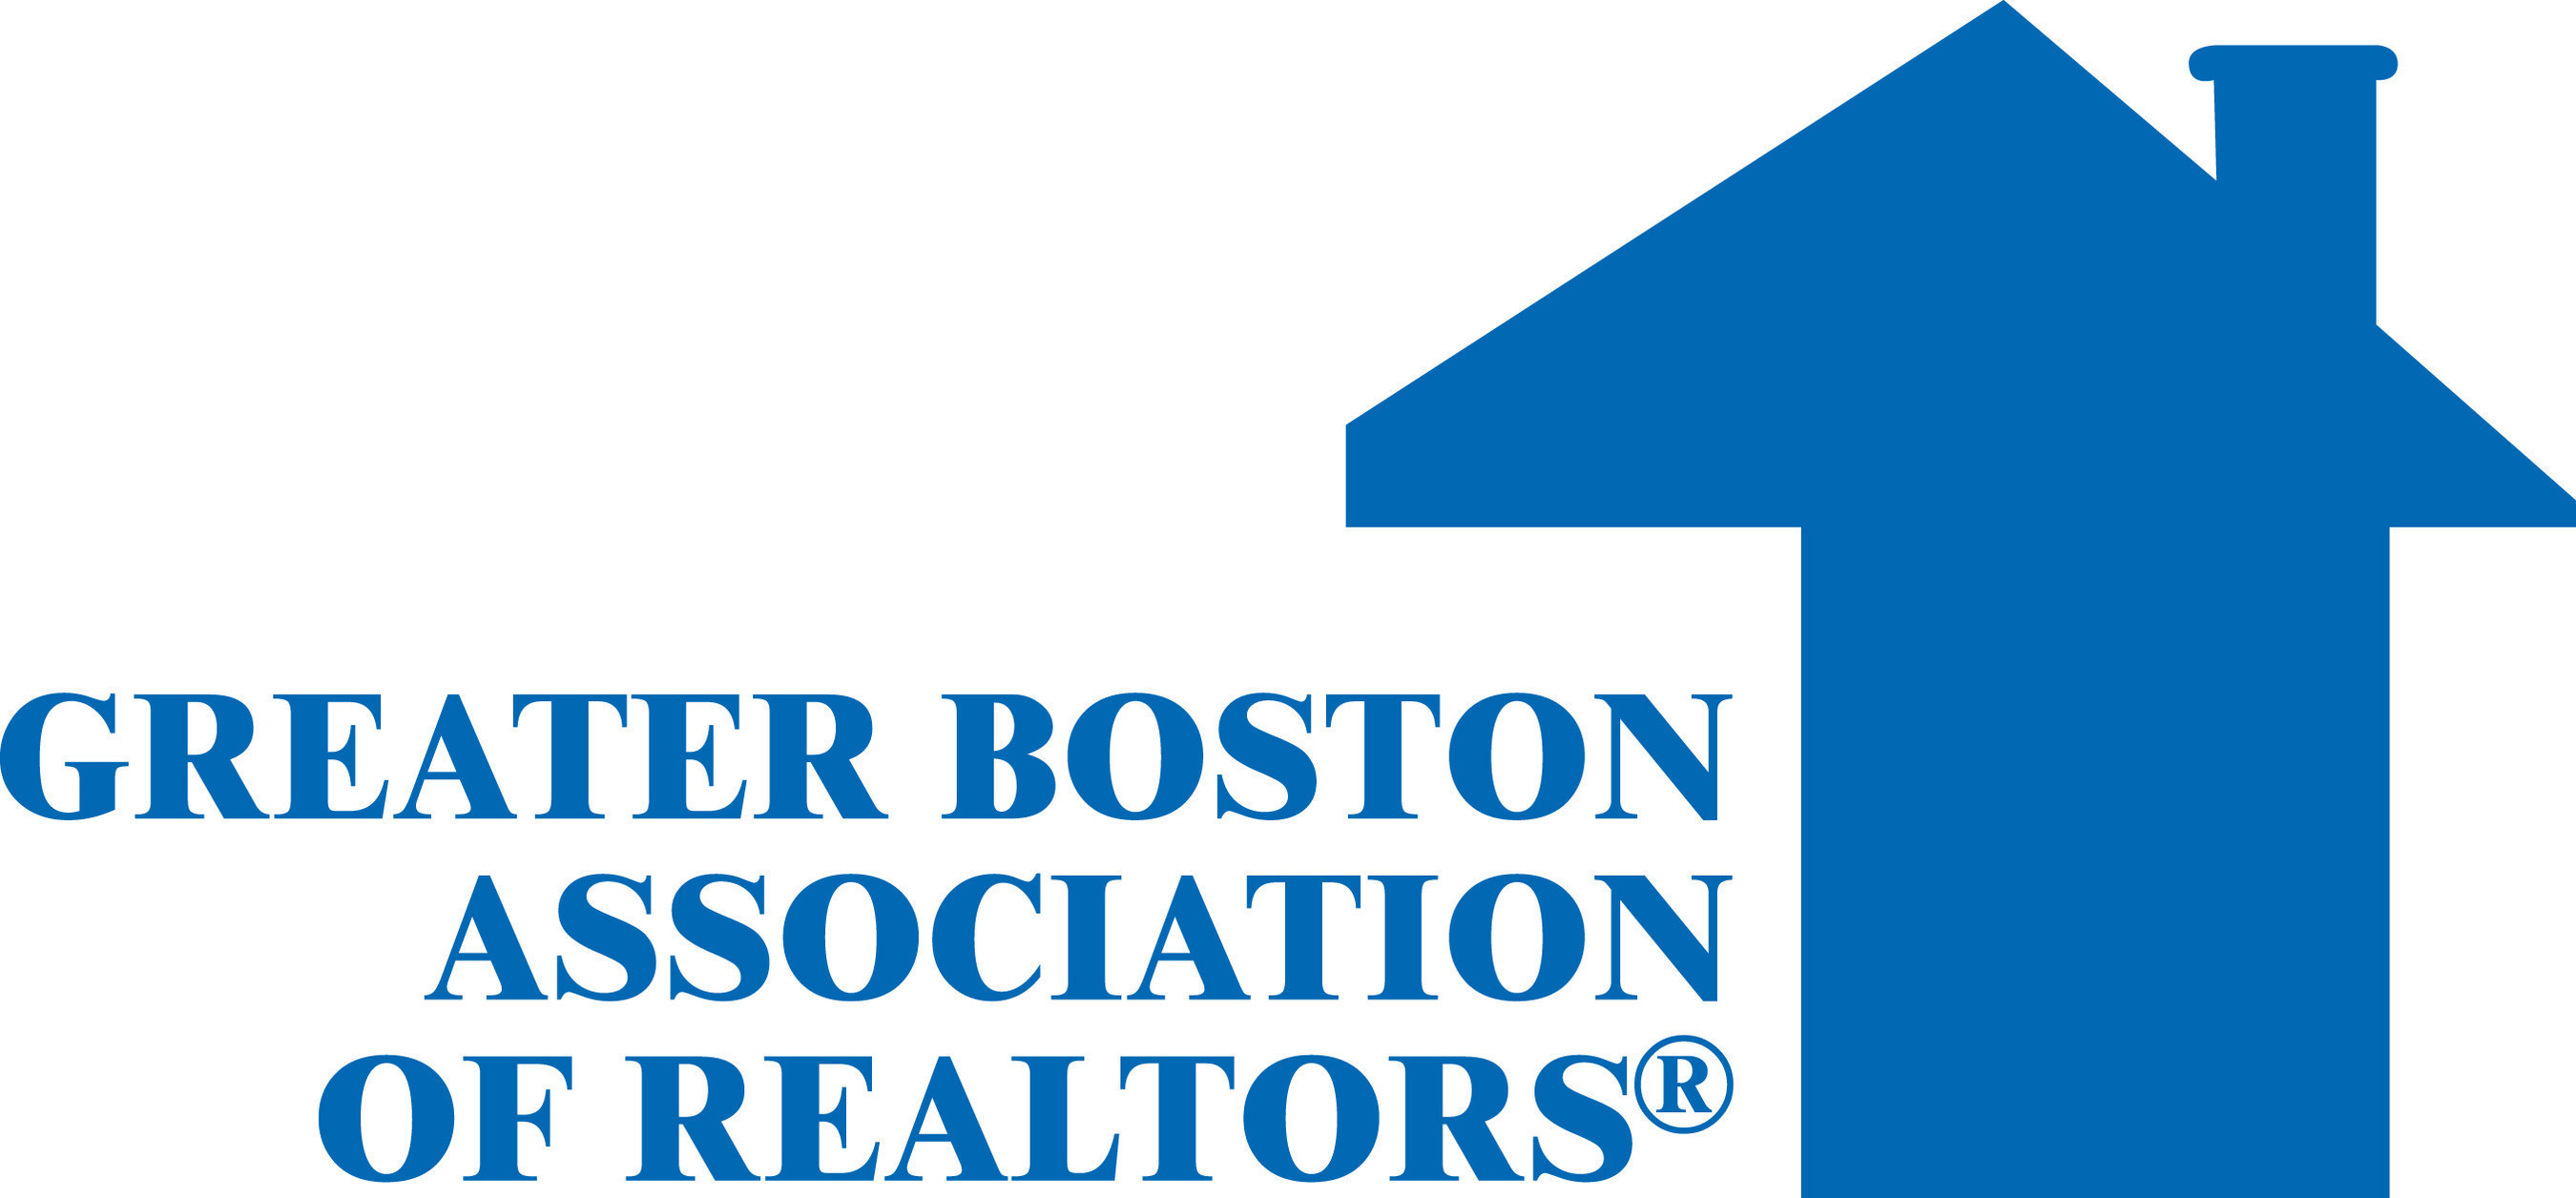 Greater Boston Association of REALTORS